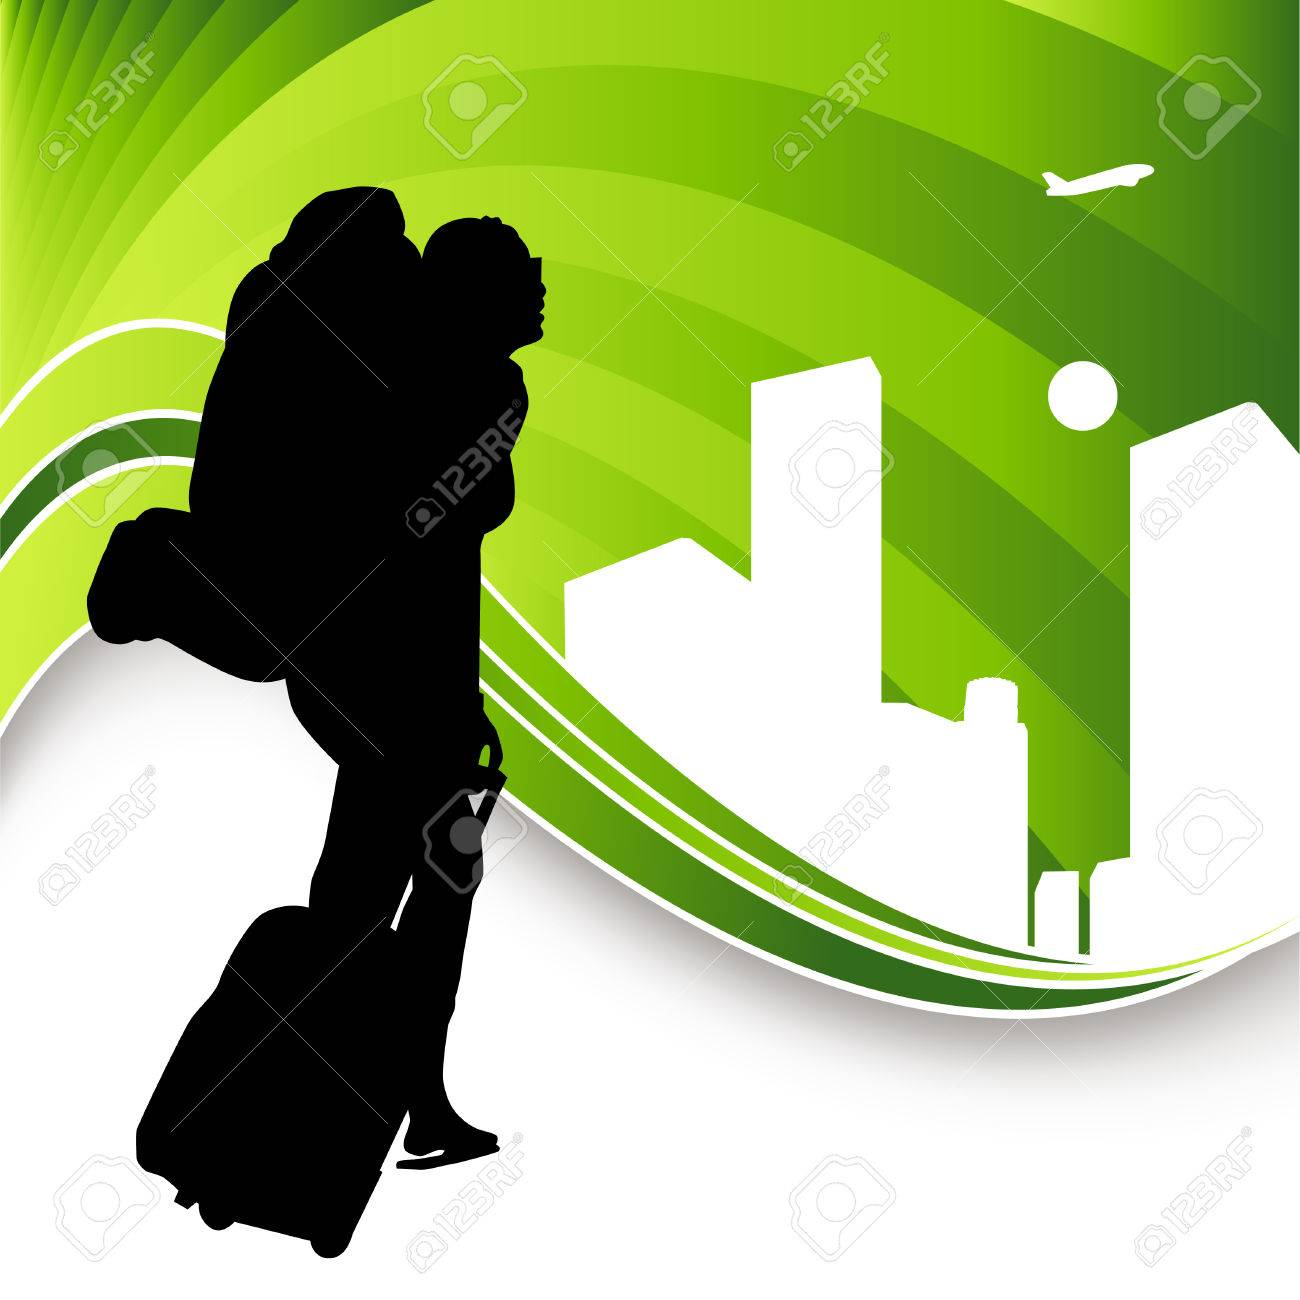 An image of a backpack traveler Stock Vector - 7684703